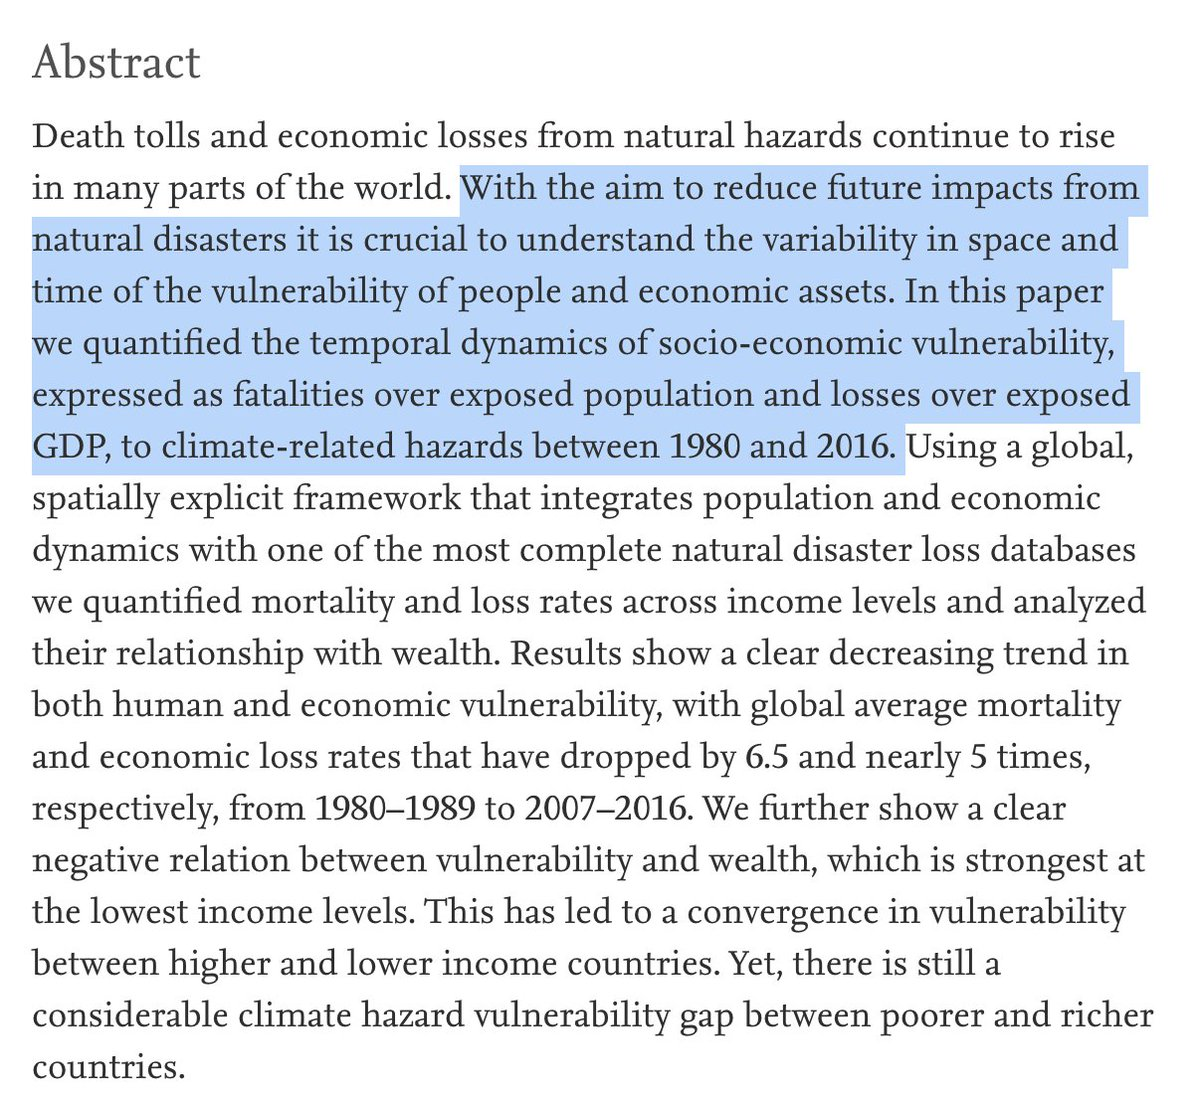 Your OWN study also is not denying that climate change is happening...it clearly is. It's studying how communities are RESPONDING and how VULNERABLE they are. ;) #ScienceLiteracy   By directly quoting your source...we can all vet your claims, assumptions, science, and accuracy.pic.twitter.com/pbUQhtwleG